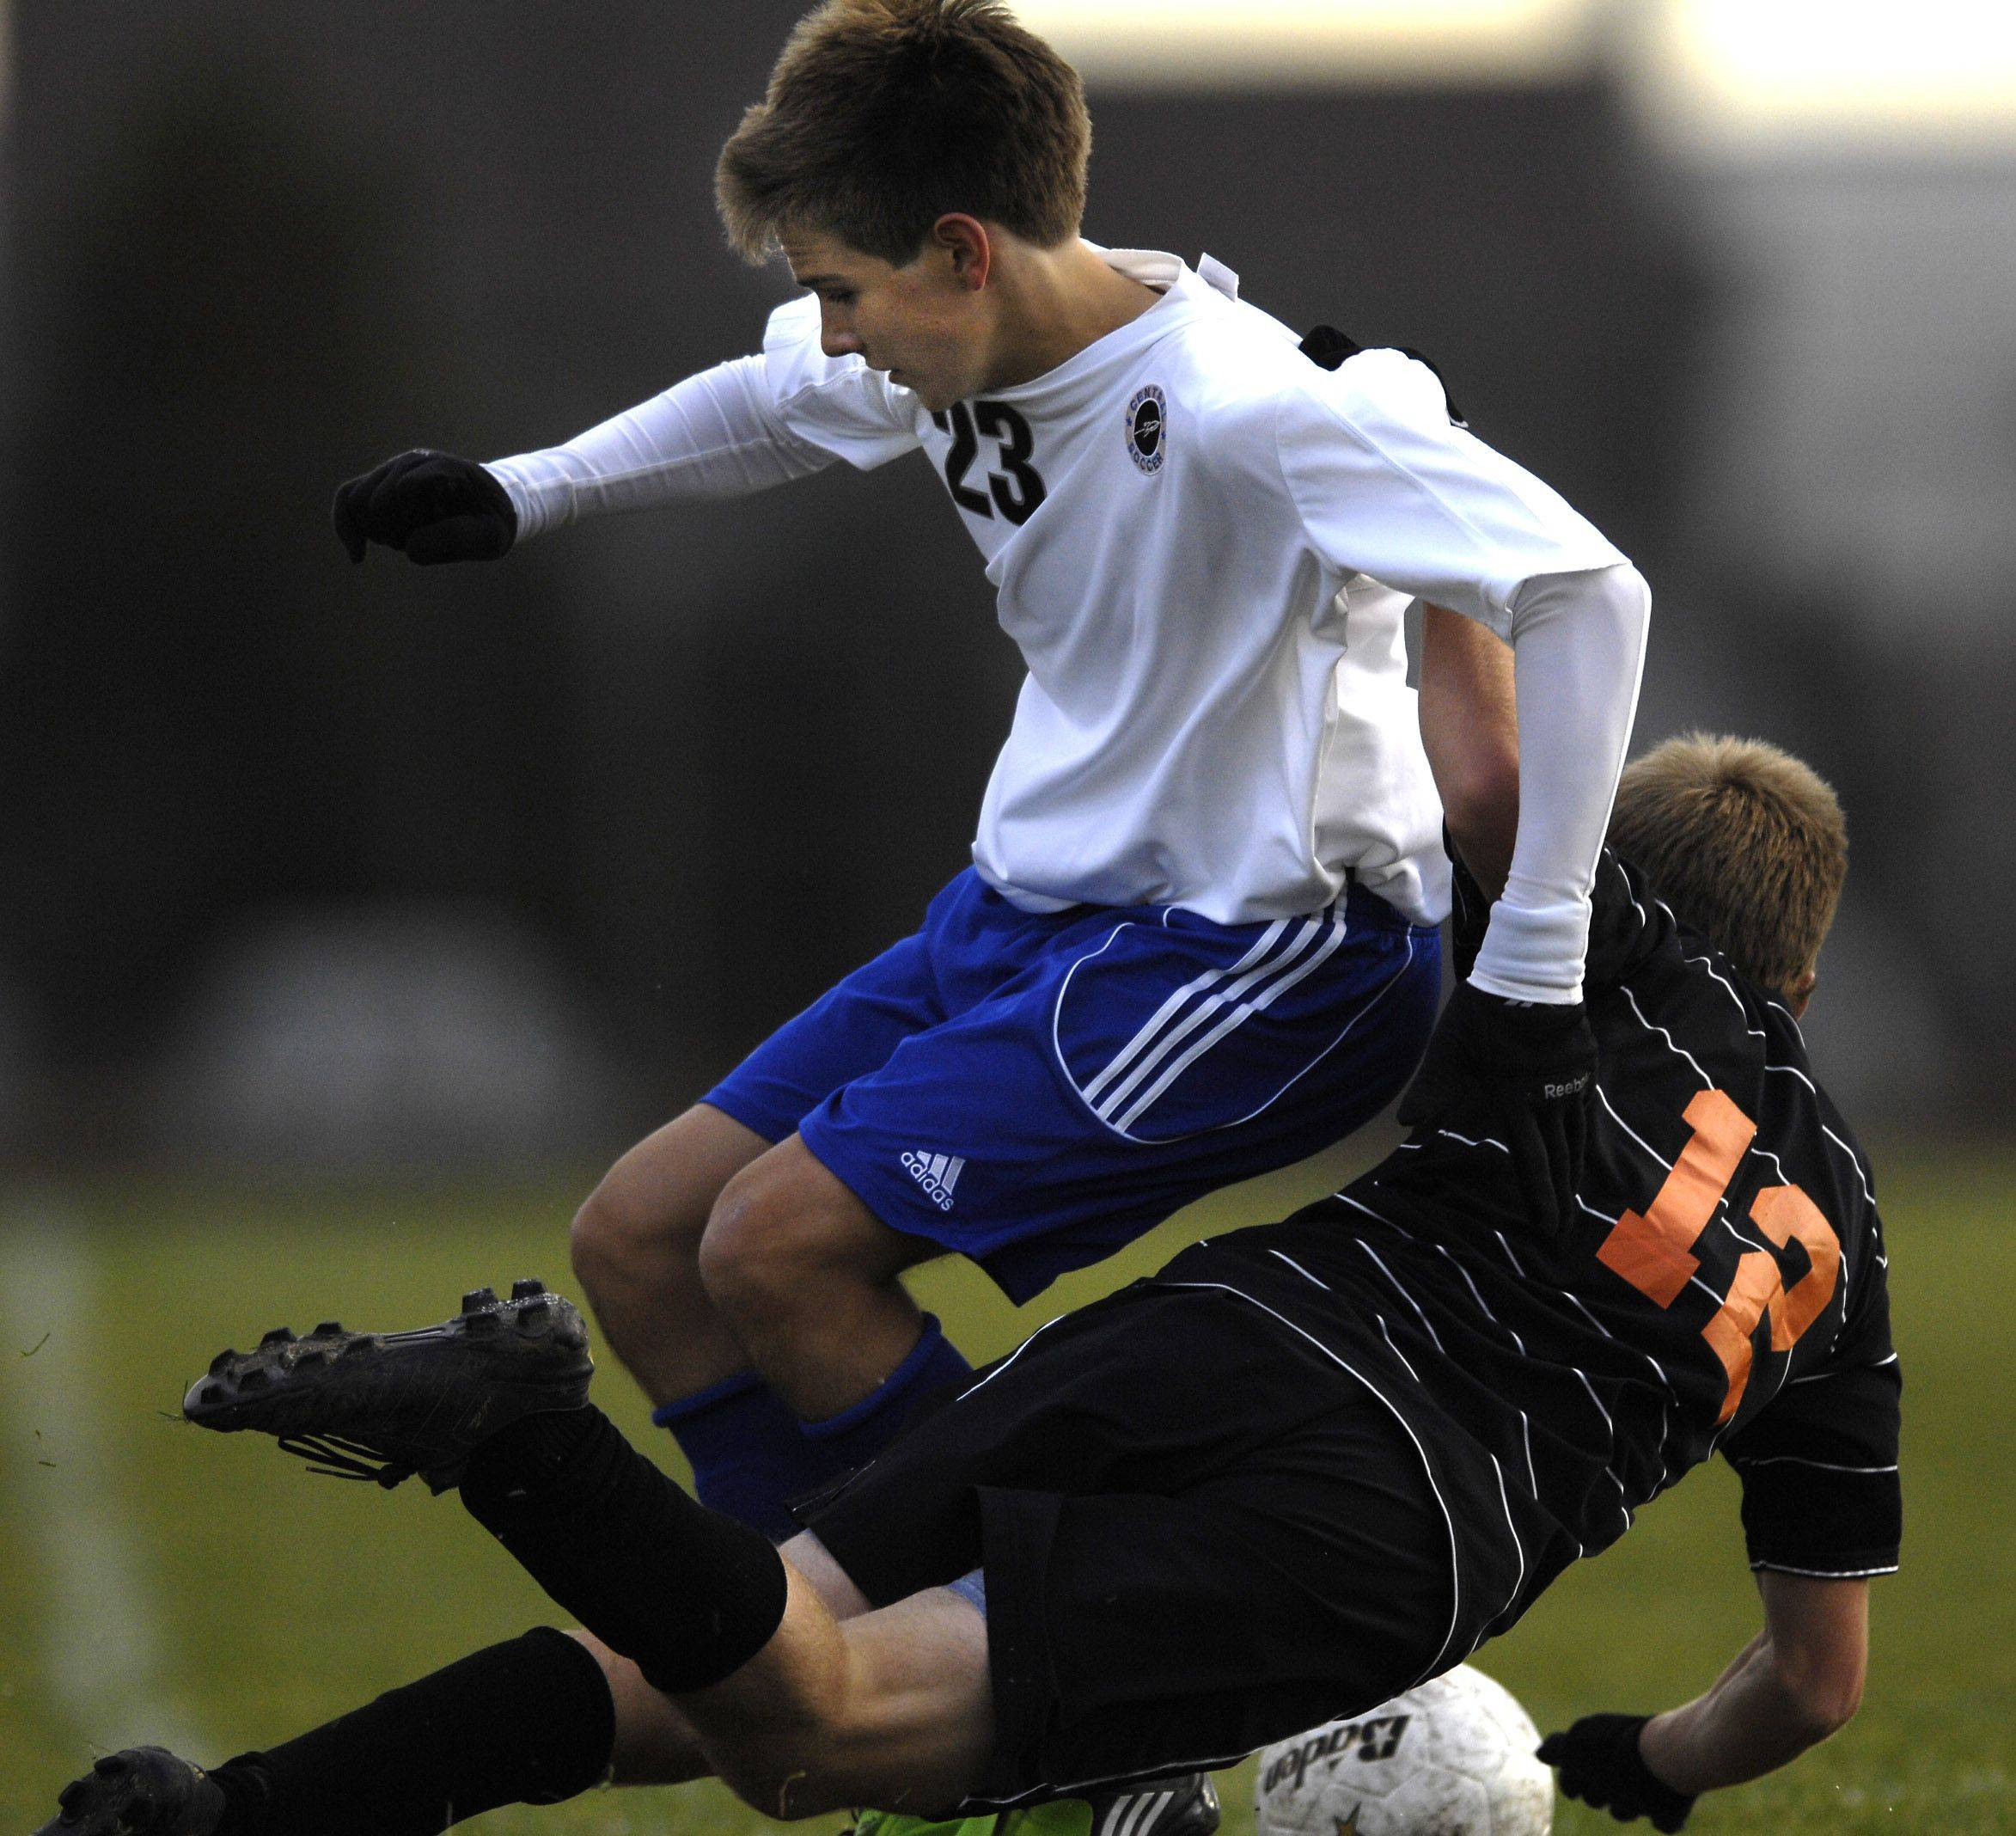 Burlington Central's Grant Stoneman knocks Freeport's Danny Steenrod off the ball in the Class 2A sectional semifinal game Wednesday in Belvidere.